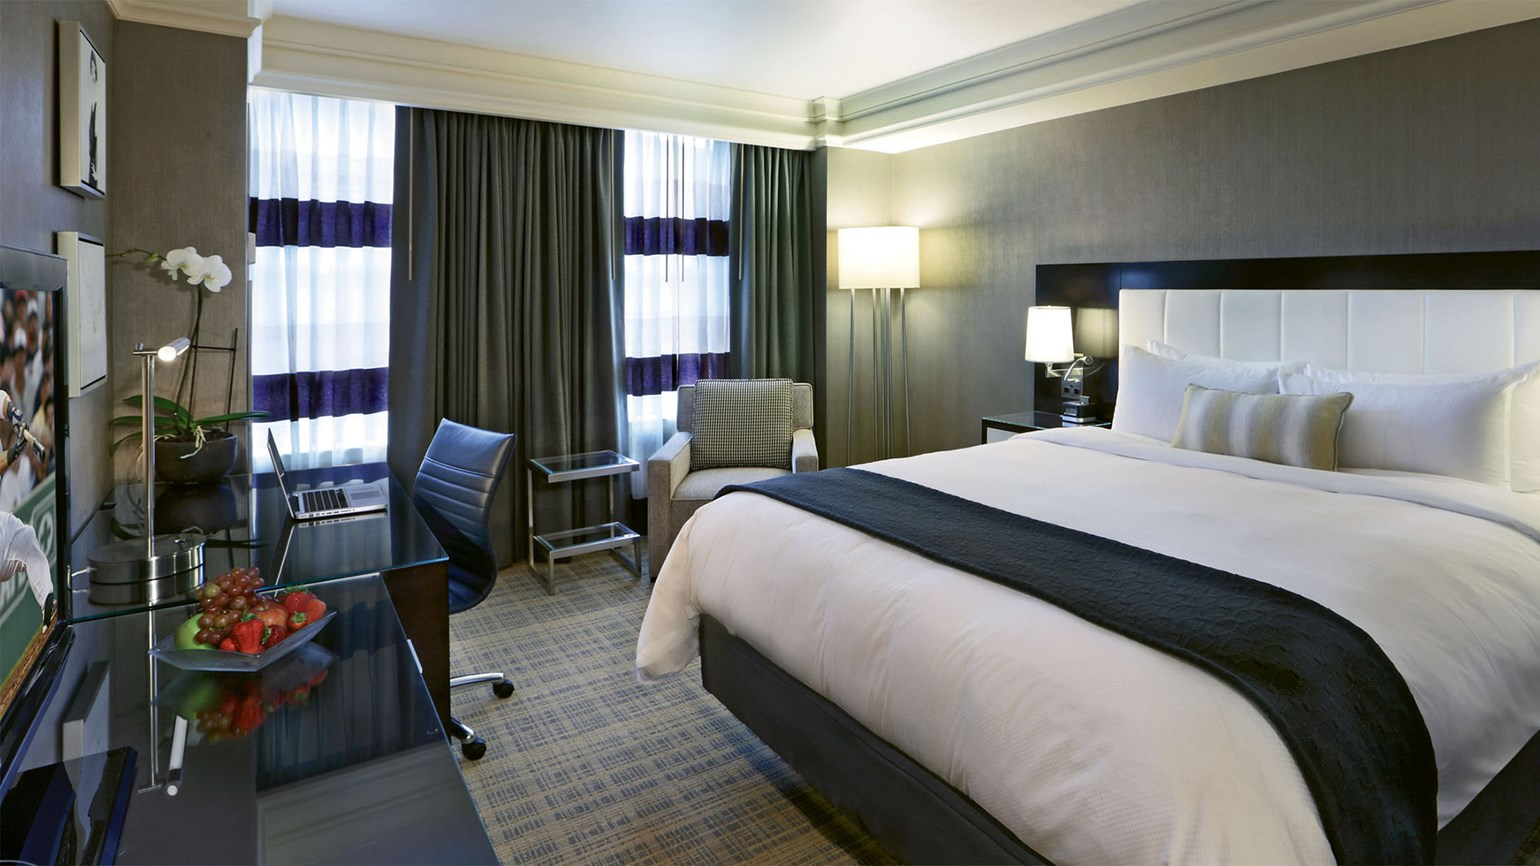 loews boston hotel 39 s 39 fall into foliage 39 embraces the. Black Bedroom Furniture Sets. Home Design Ideas